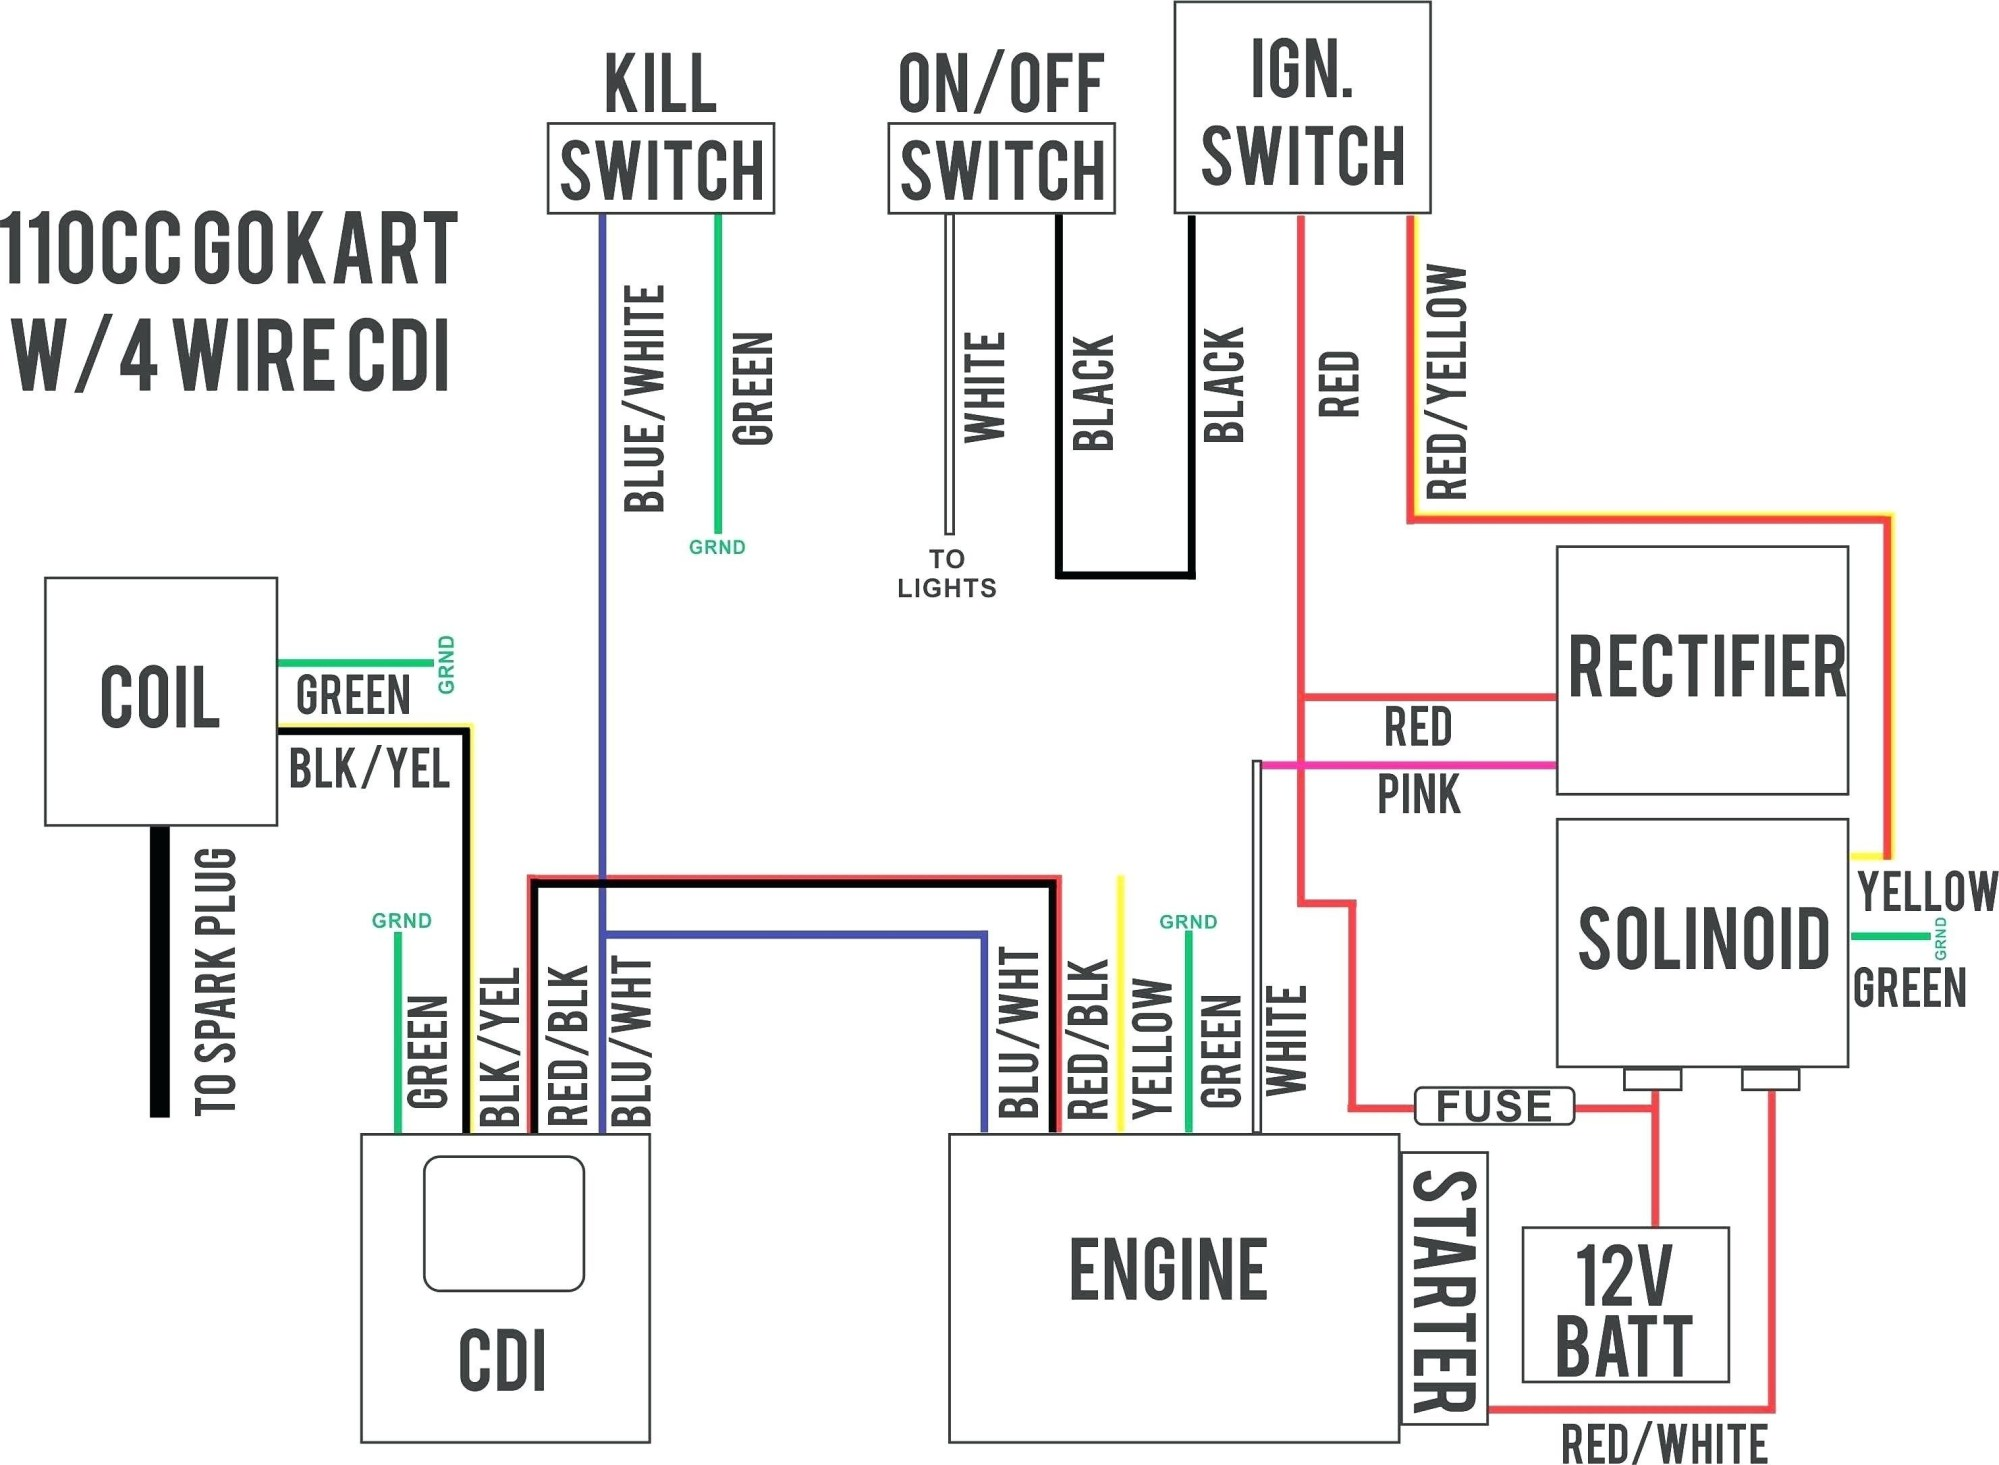 hight resolution of generac wiring diagram pelletgrillpart com u2022 4969 transfer switch wiring diagram